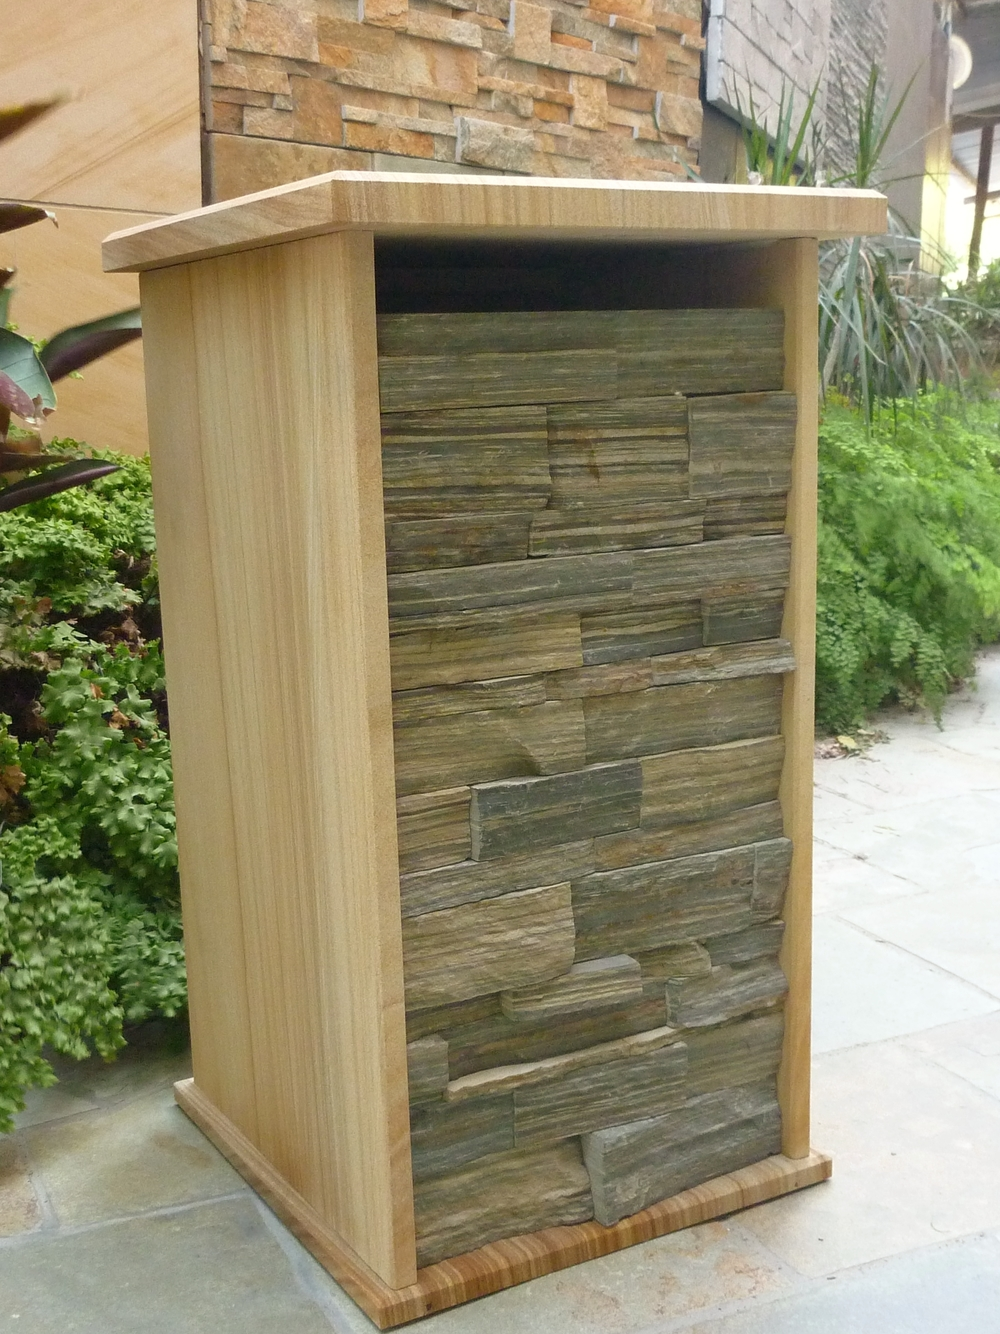 96. customized letterbox extra large envelops. 380x325mm floor size inside. Outside dimentions 430x410x850mm. $710